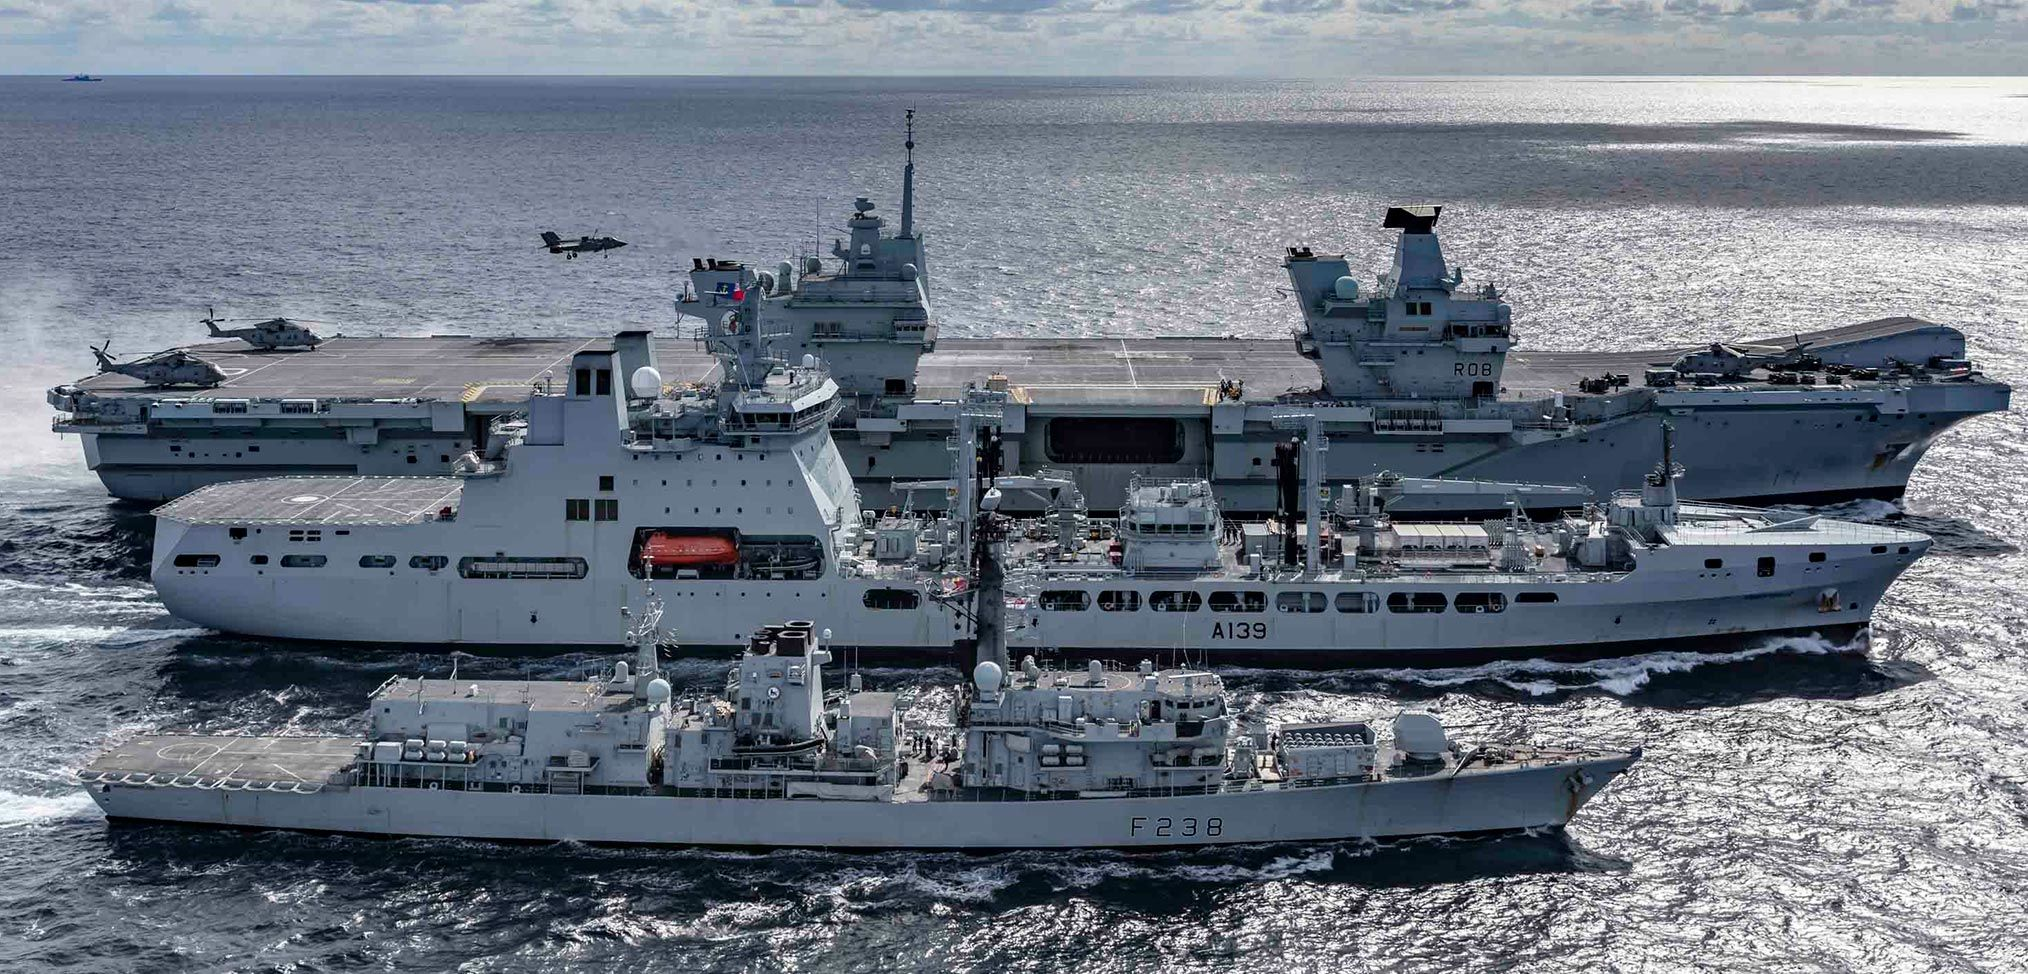 Photo essay: HMS Queen Elizabeth – Westlant 19 deployment – Part 4